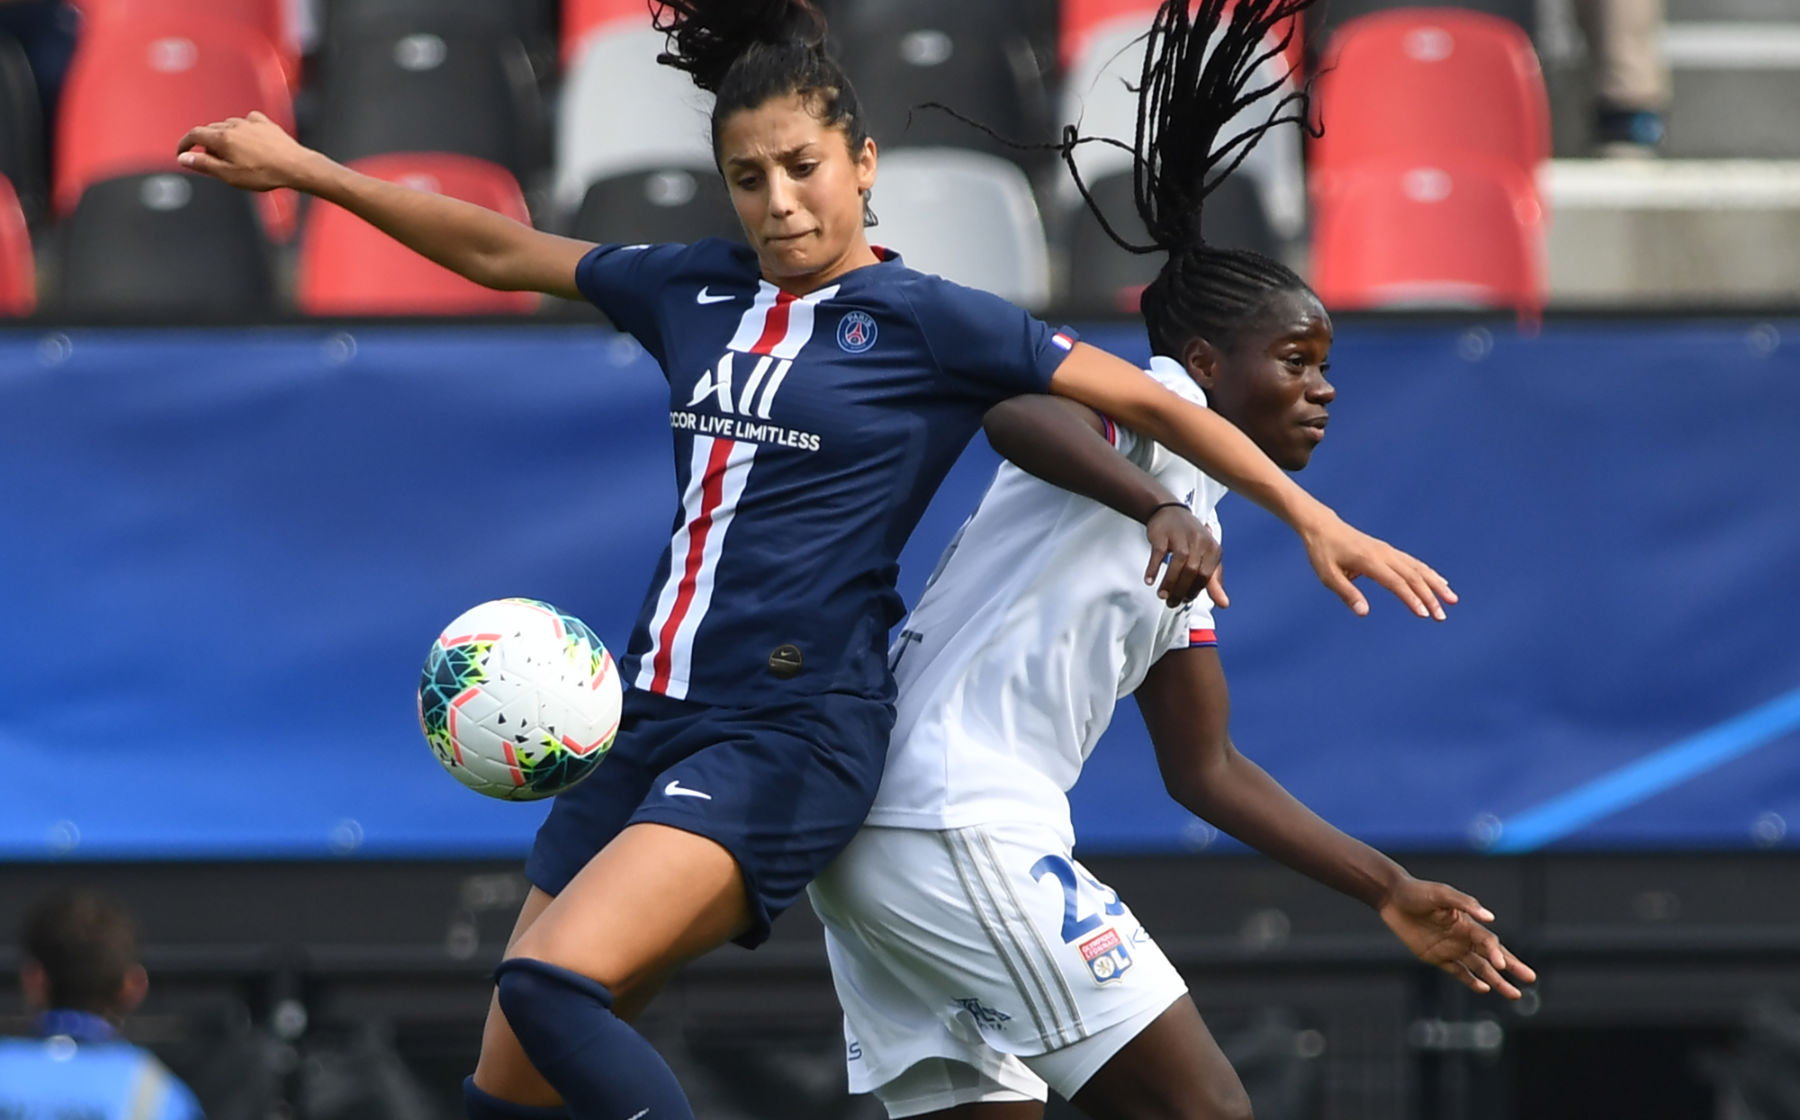 Psg Feminine Coach Is Hopeful That They Ll Finish Their Season